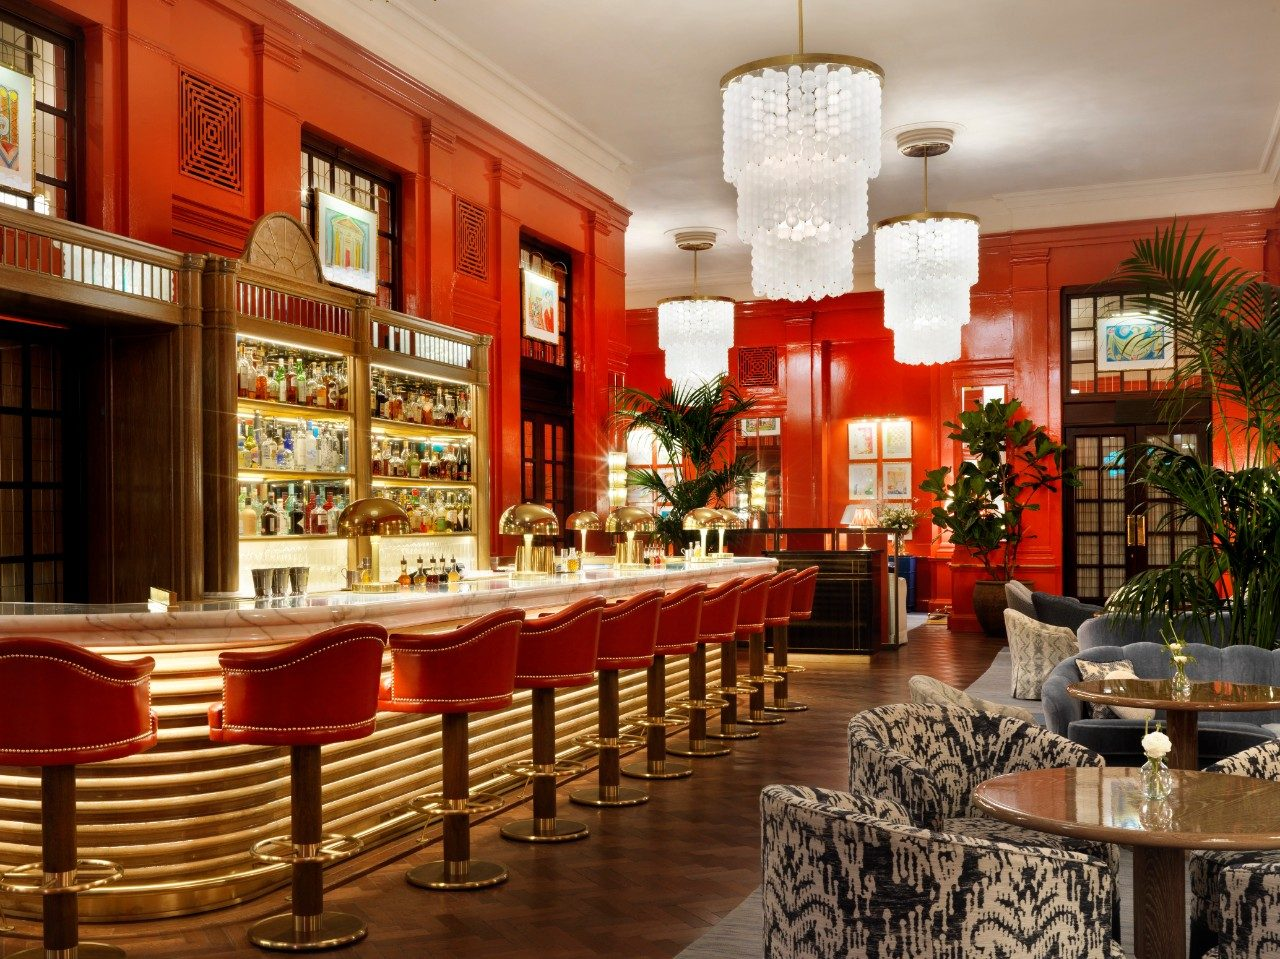 The Coral Room bar at The Bloomsbury Hotel in London